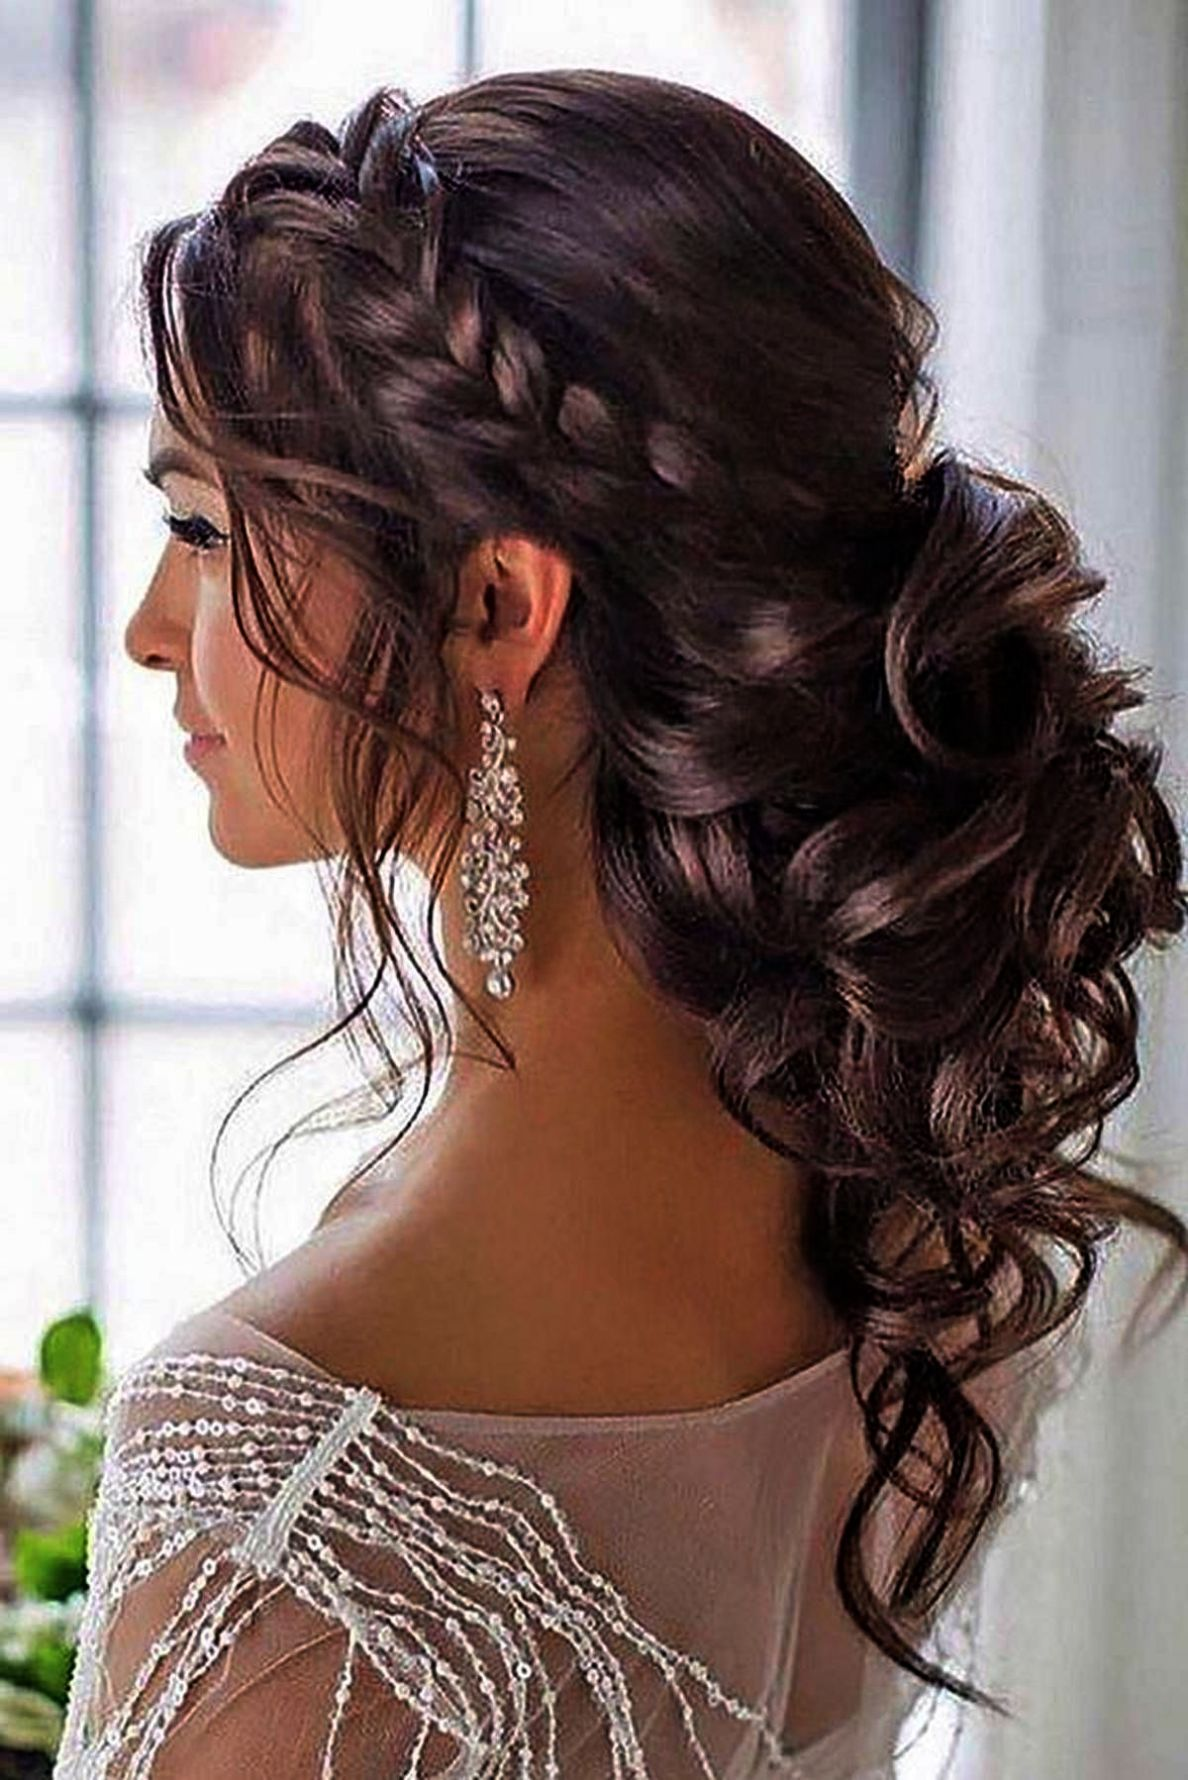 Simple Hairstyles For Wedding Party Step By Step Simple Wedding Hairstyles For Long Curly Hair Diyhairstyles Quince Hairstyles Hair Lengths Wedding Hair Half